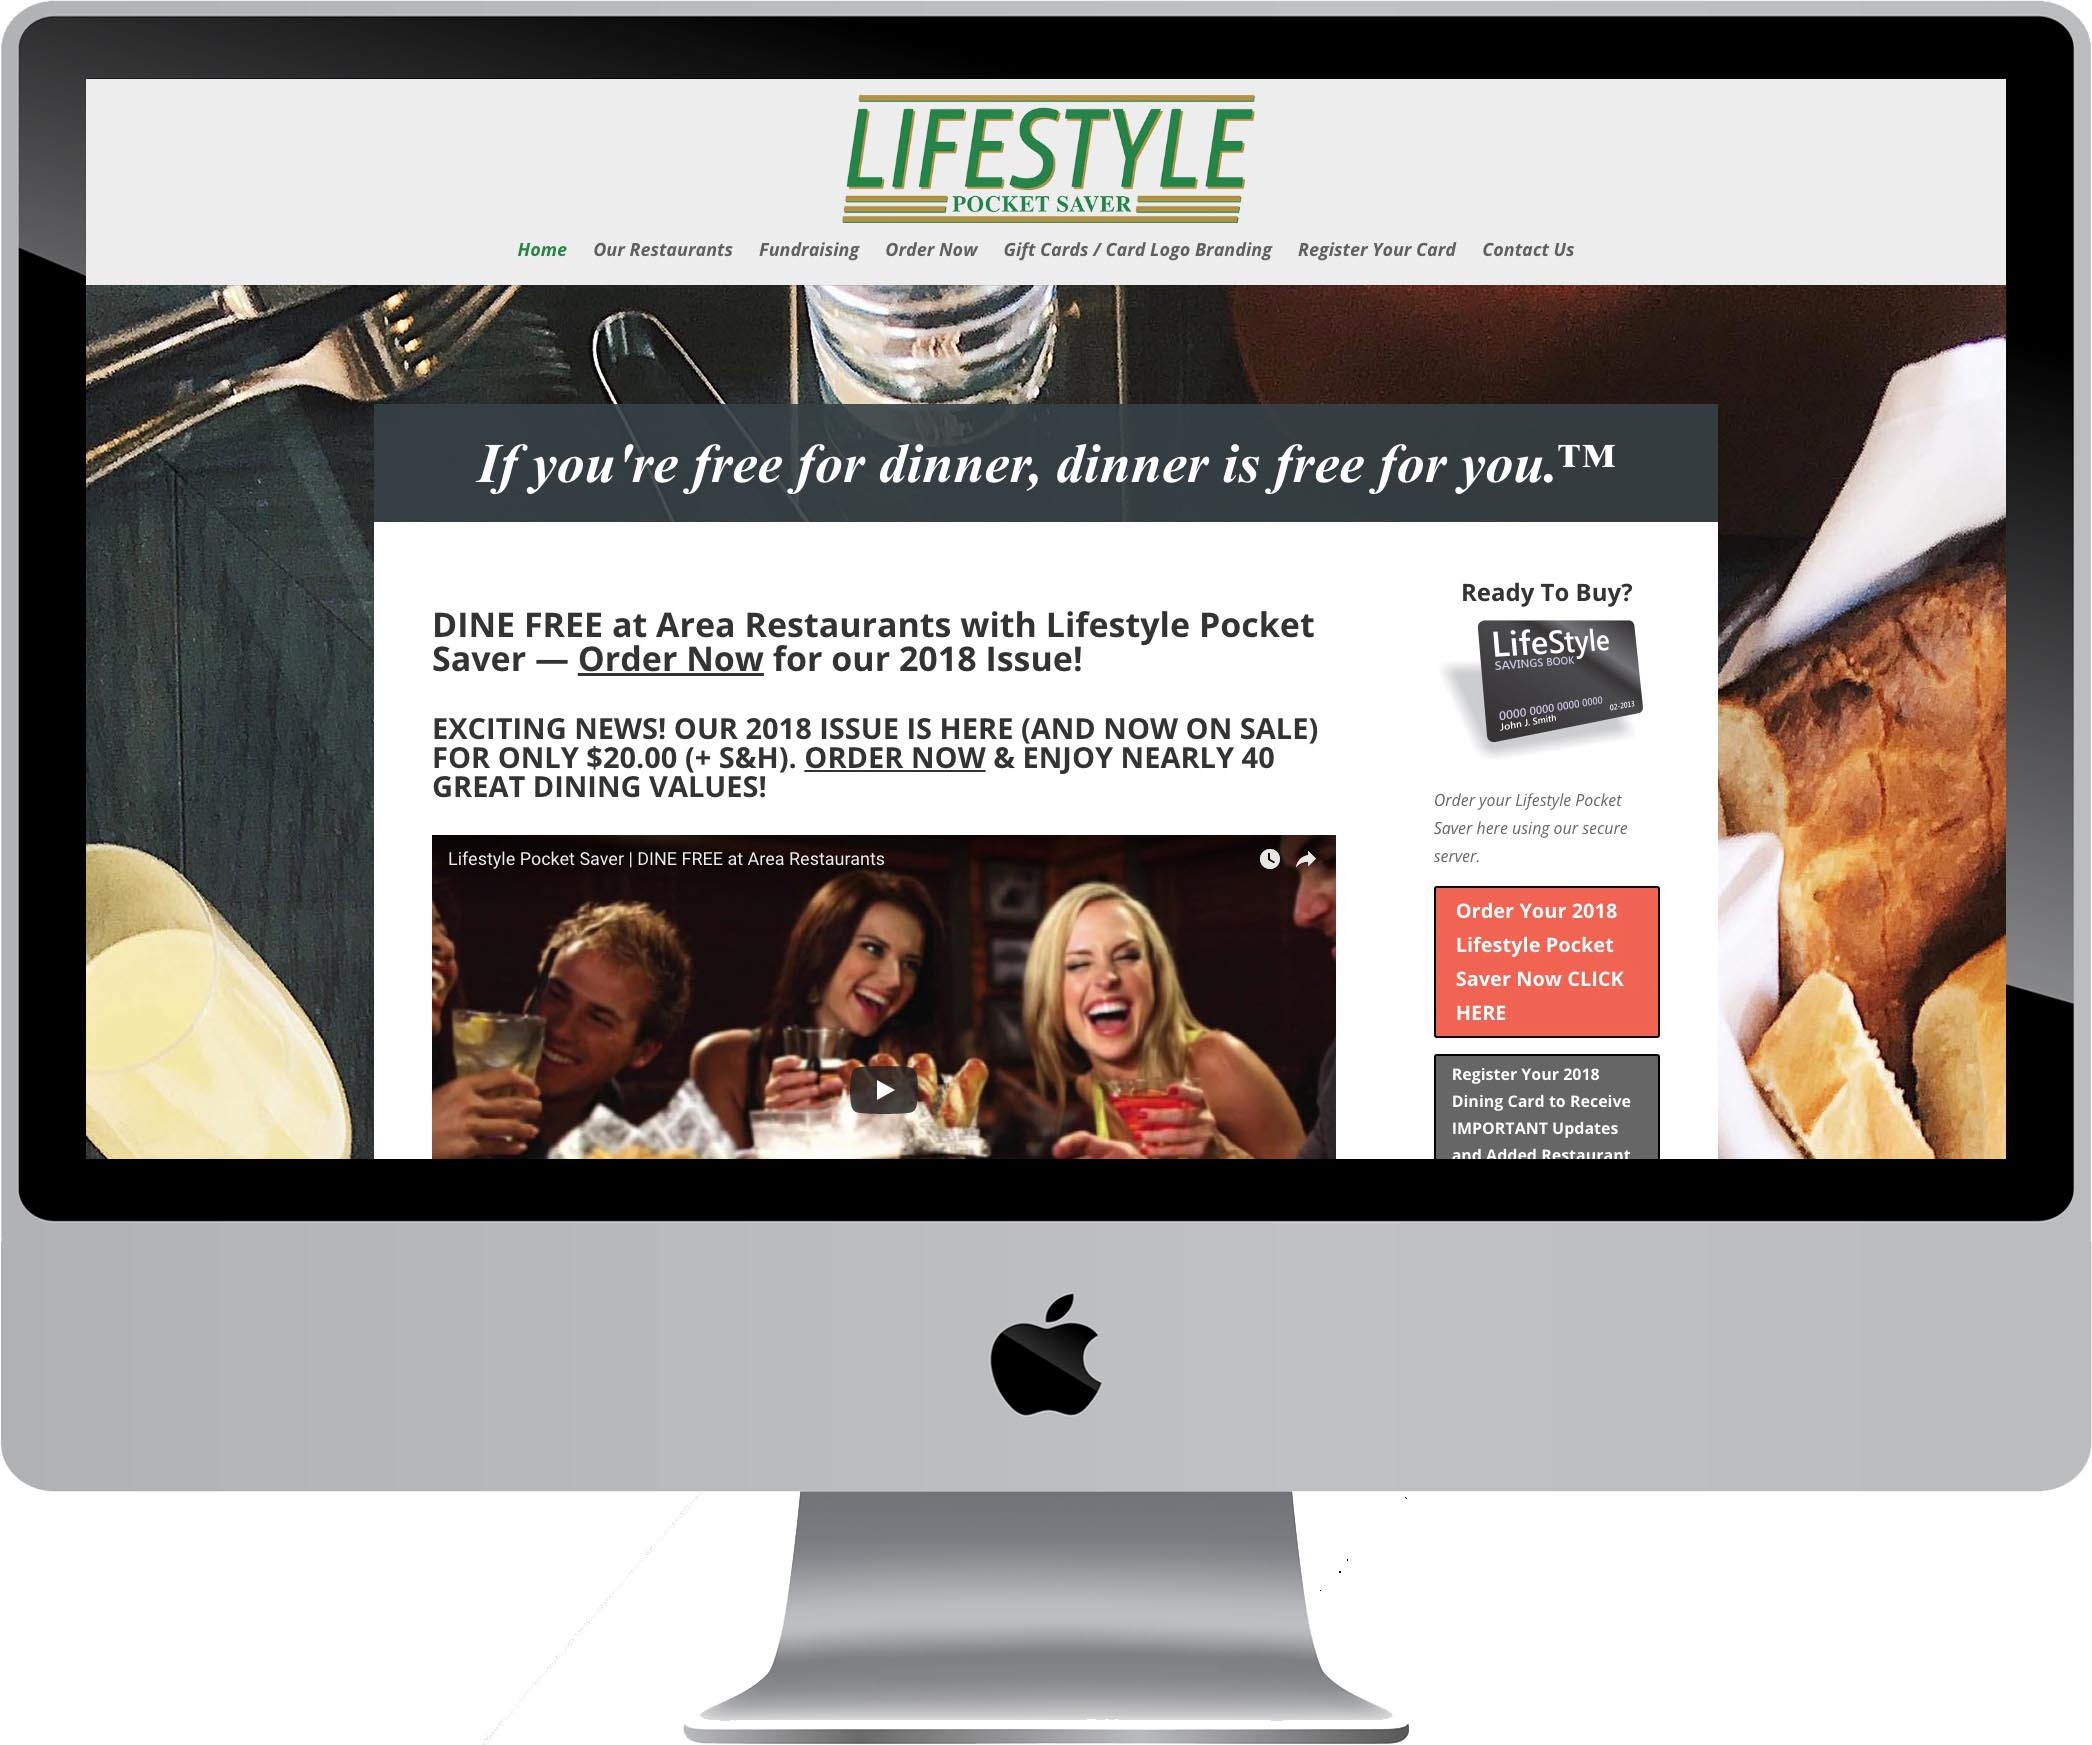 Lifestyle Pocket Saver Website Design